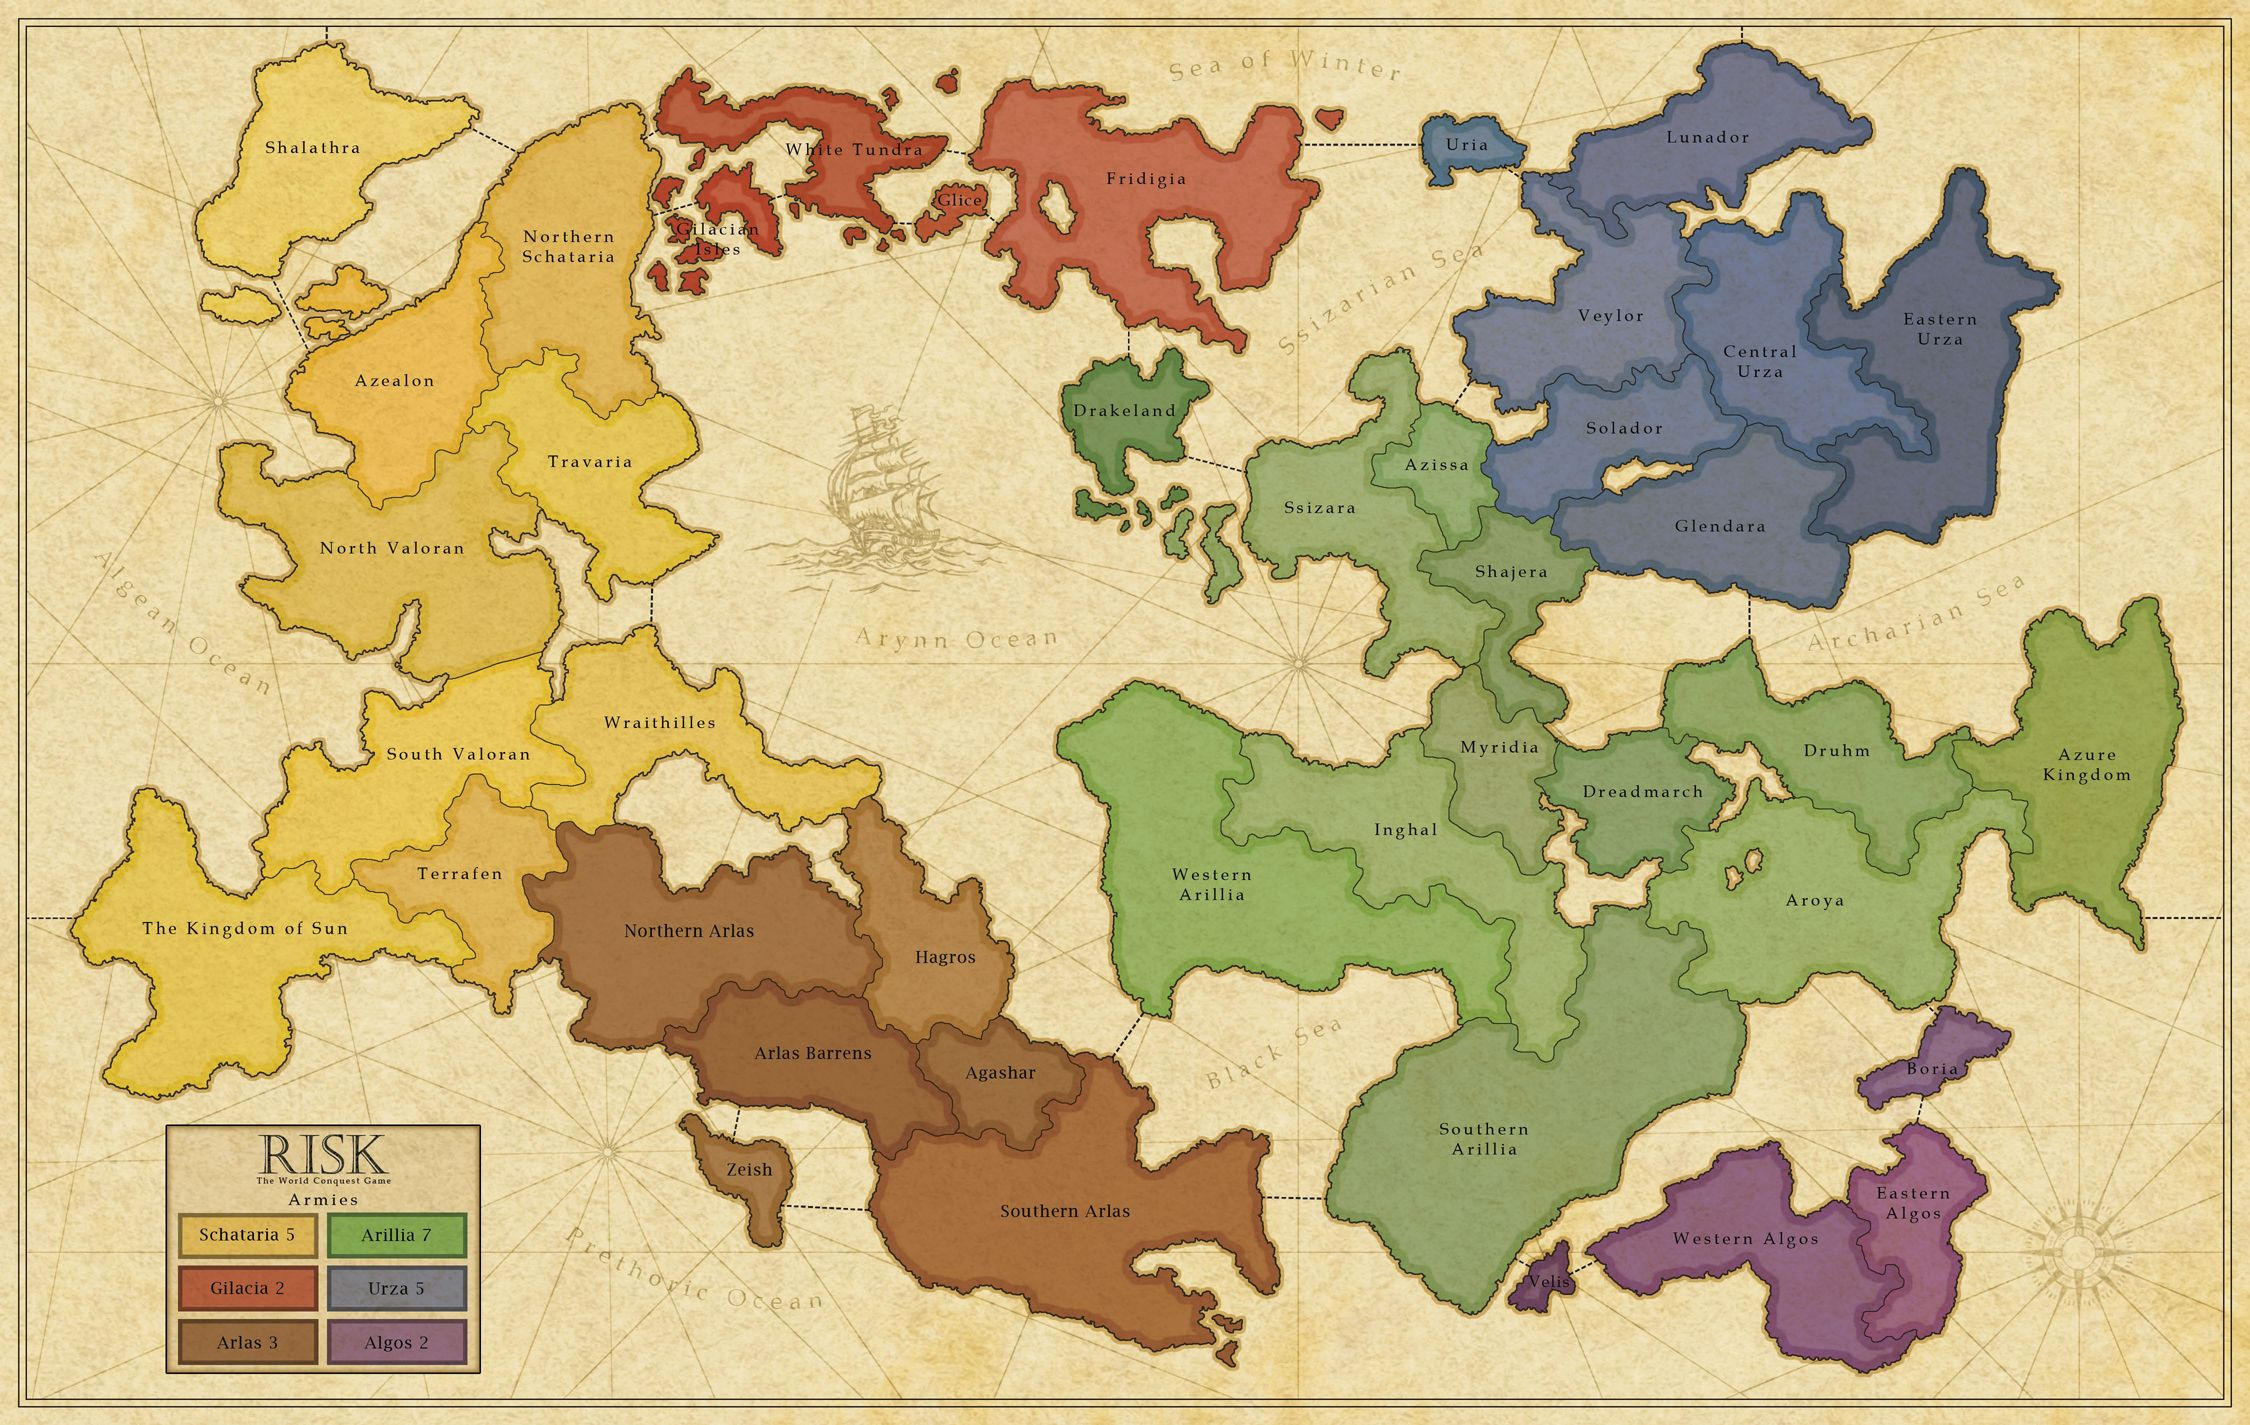 Pin By Philip Mcgarvey On Maps Fantasy World Map Map Imaginary